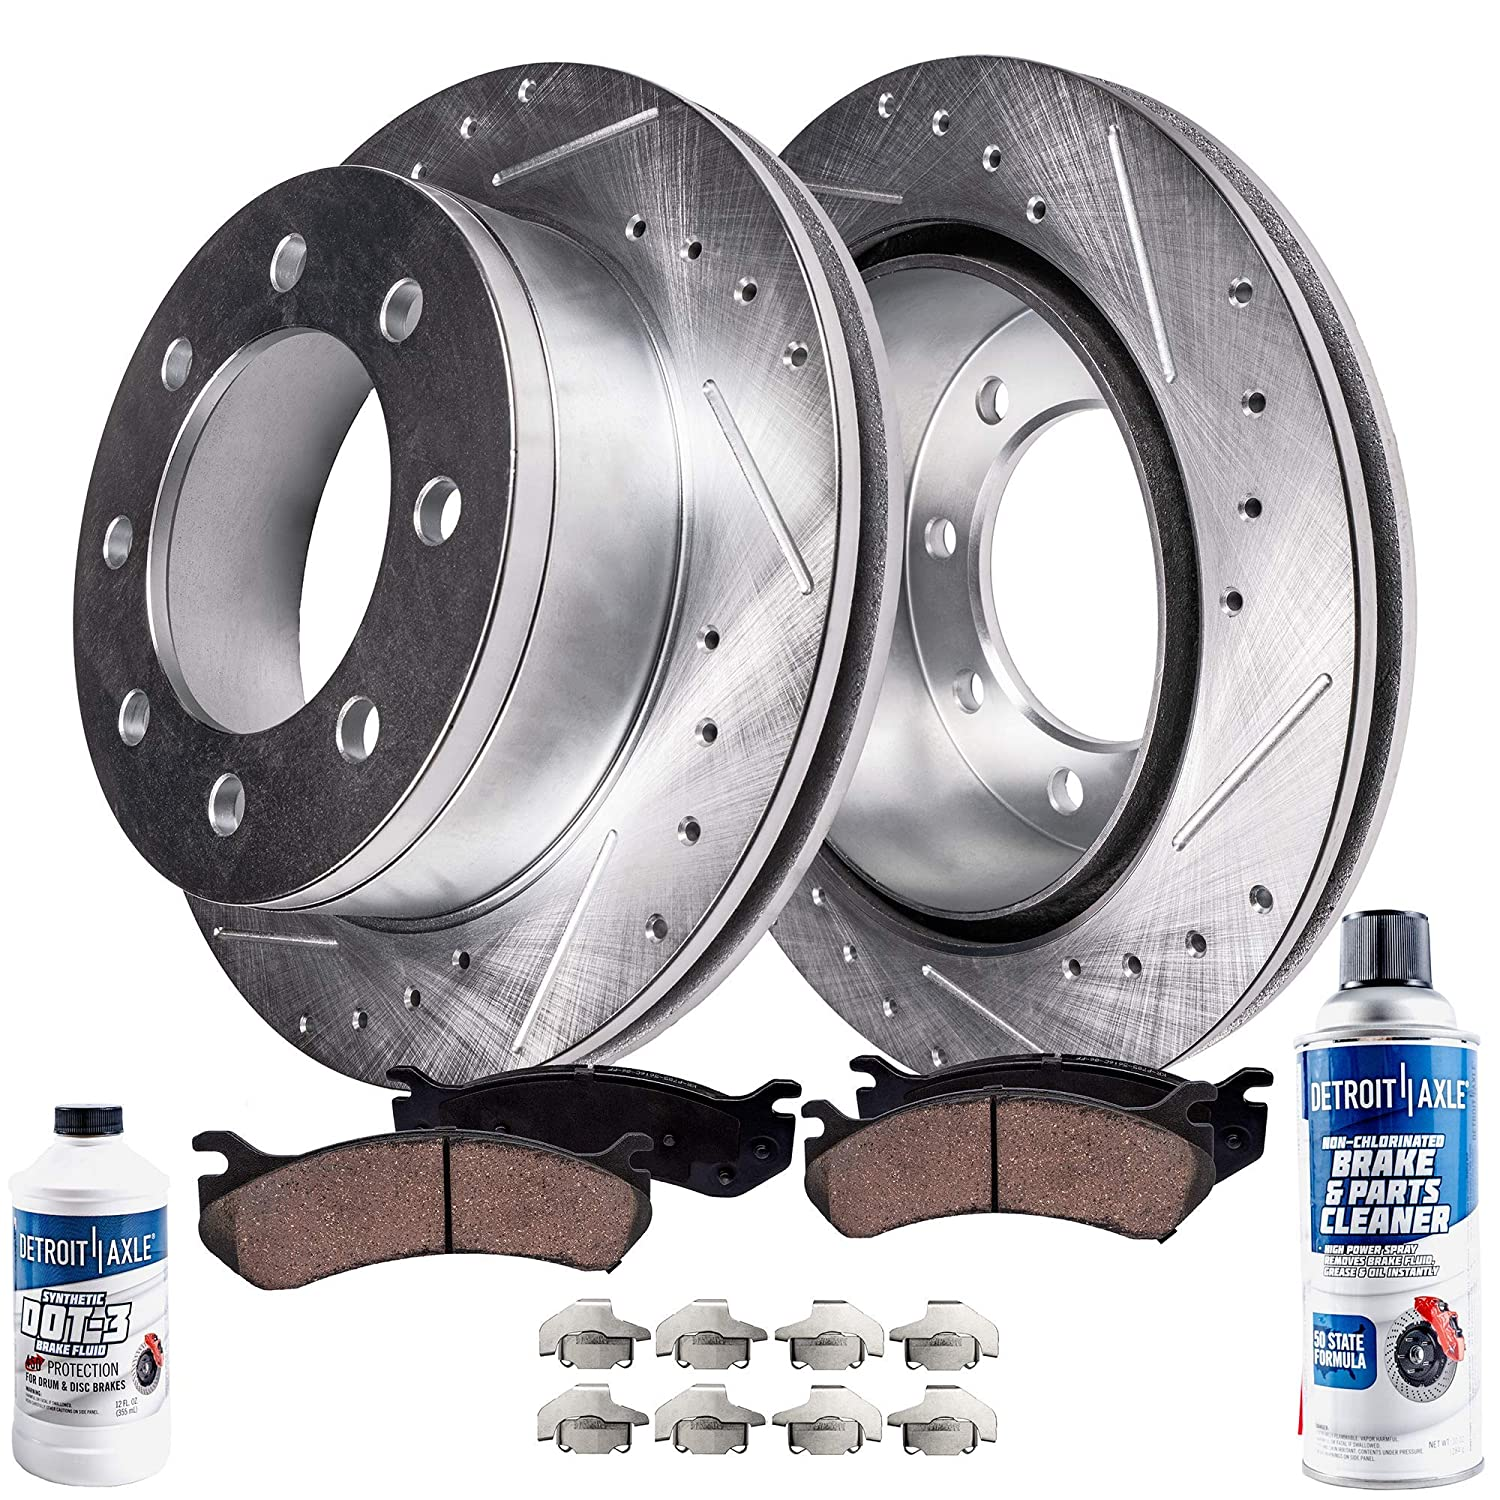 For 2005-2010 Ford F-350 Super Duty,F-250 Super Duty Rear Super Duty Brake Pads